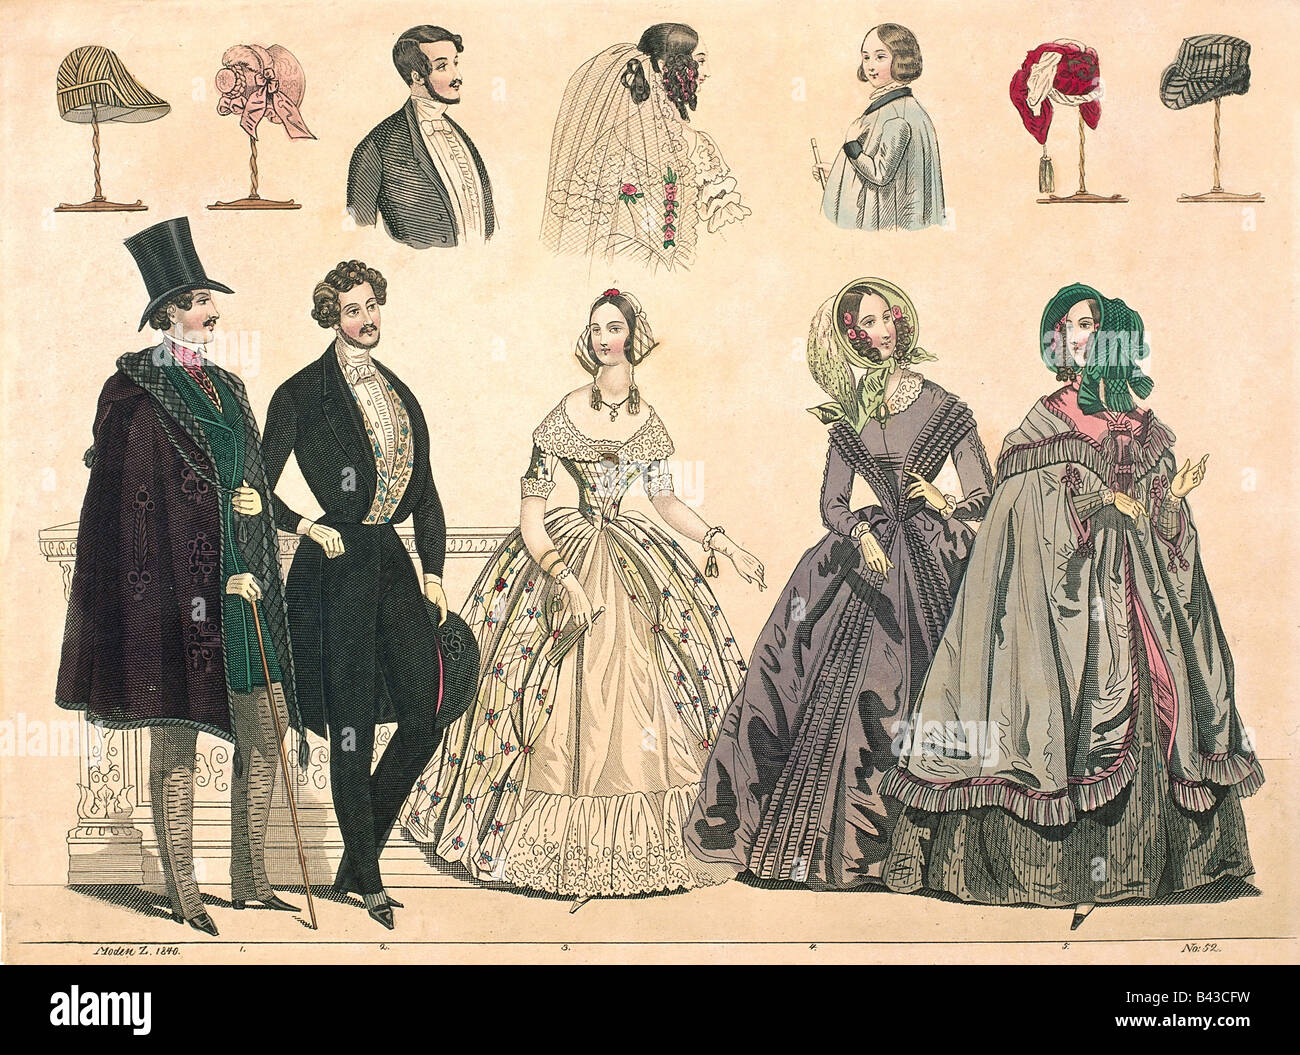 19th century fashion images Stitching the fashions of the 19th century - History Extra